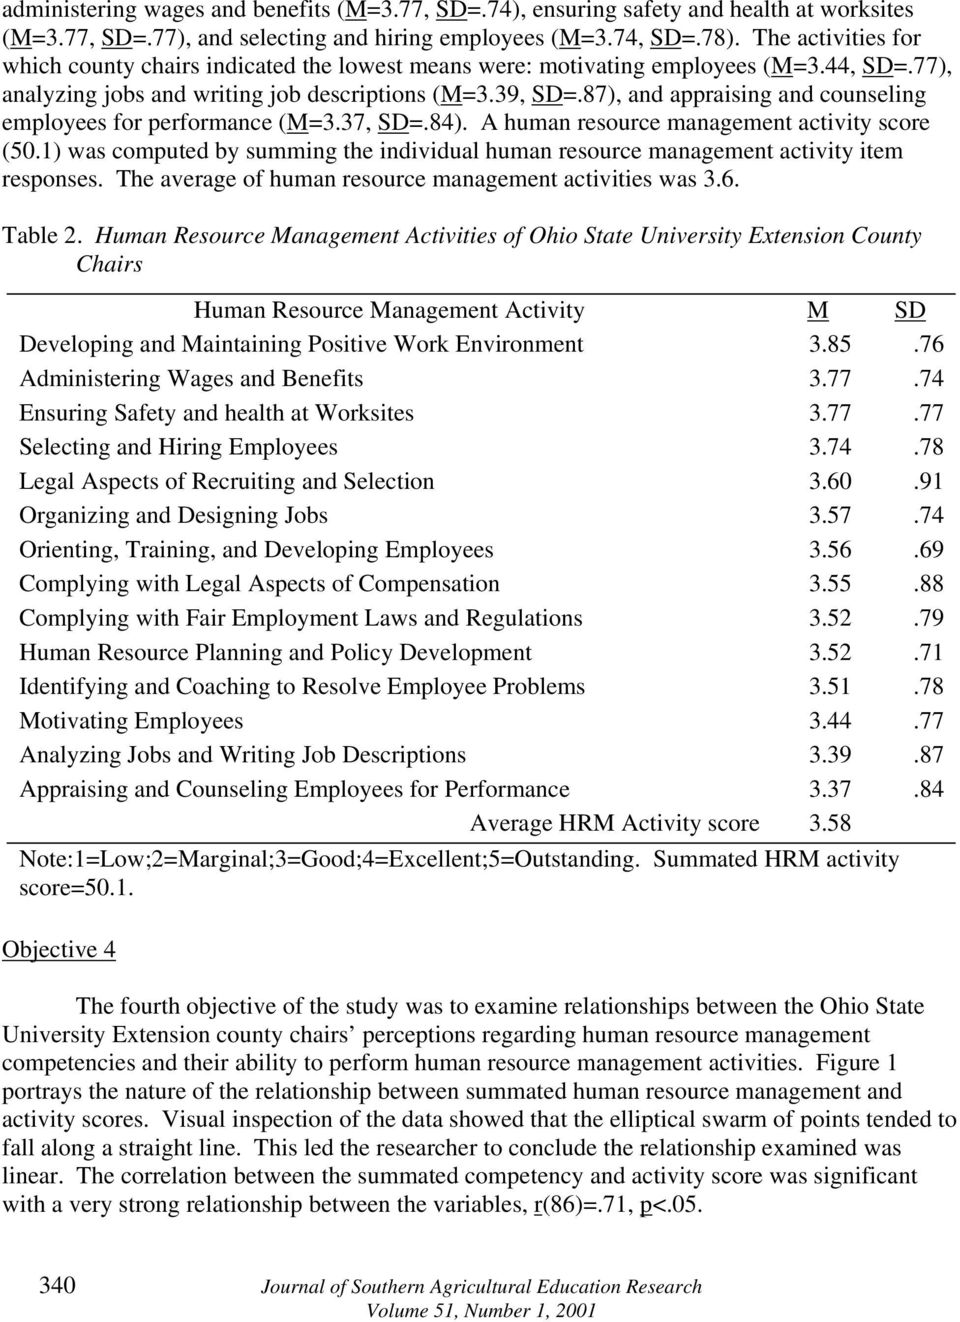 87), and appraising and counseling employees for performance (M=3.37, SD=.84). A human resource management activity score (50.